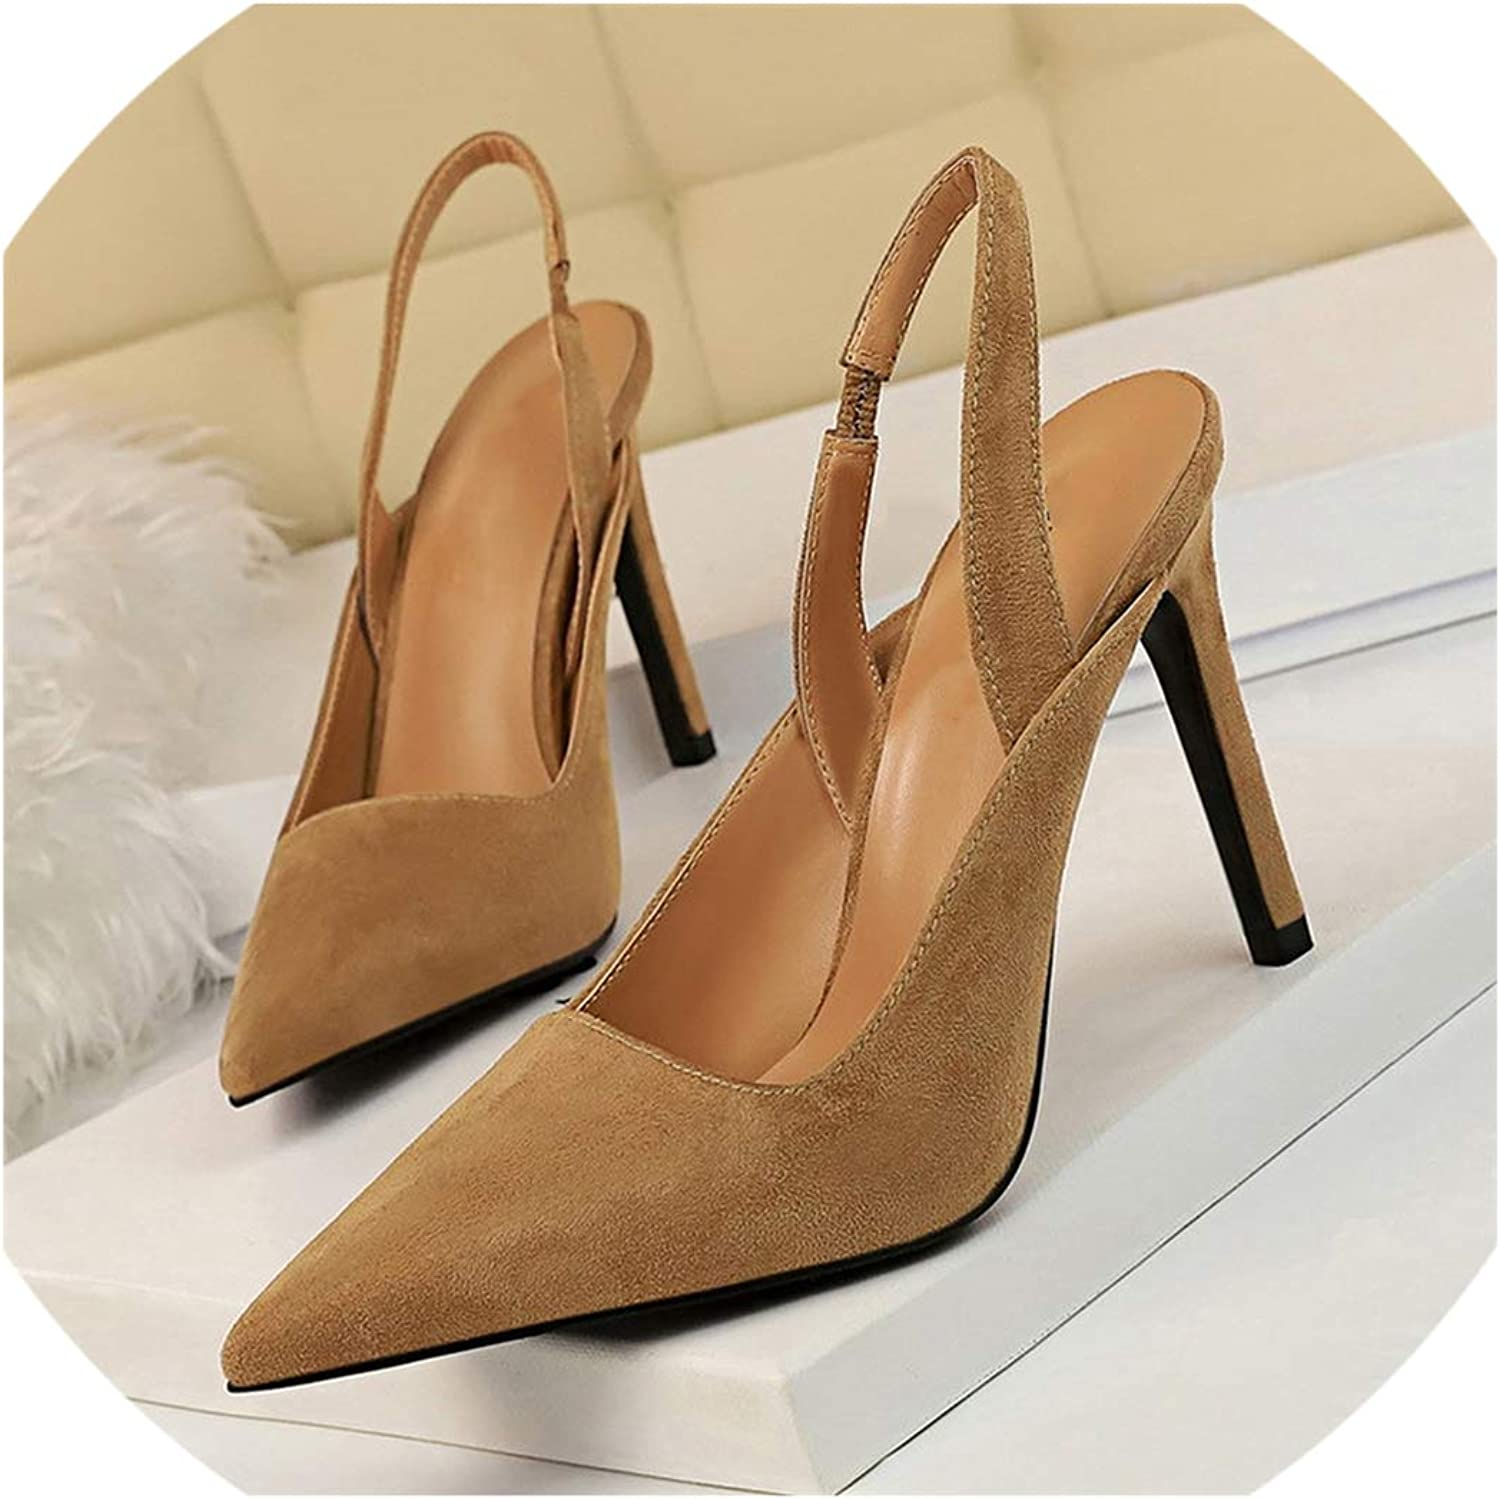 Black Pumps Women shoes red Heels shoes Sexy high Heels Woman shoes high Heels ayakkabi